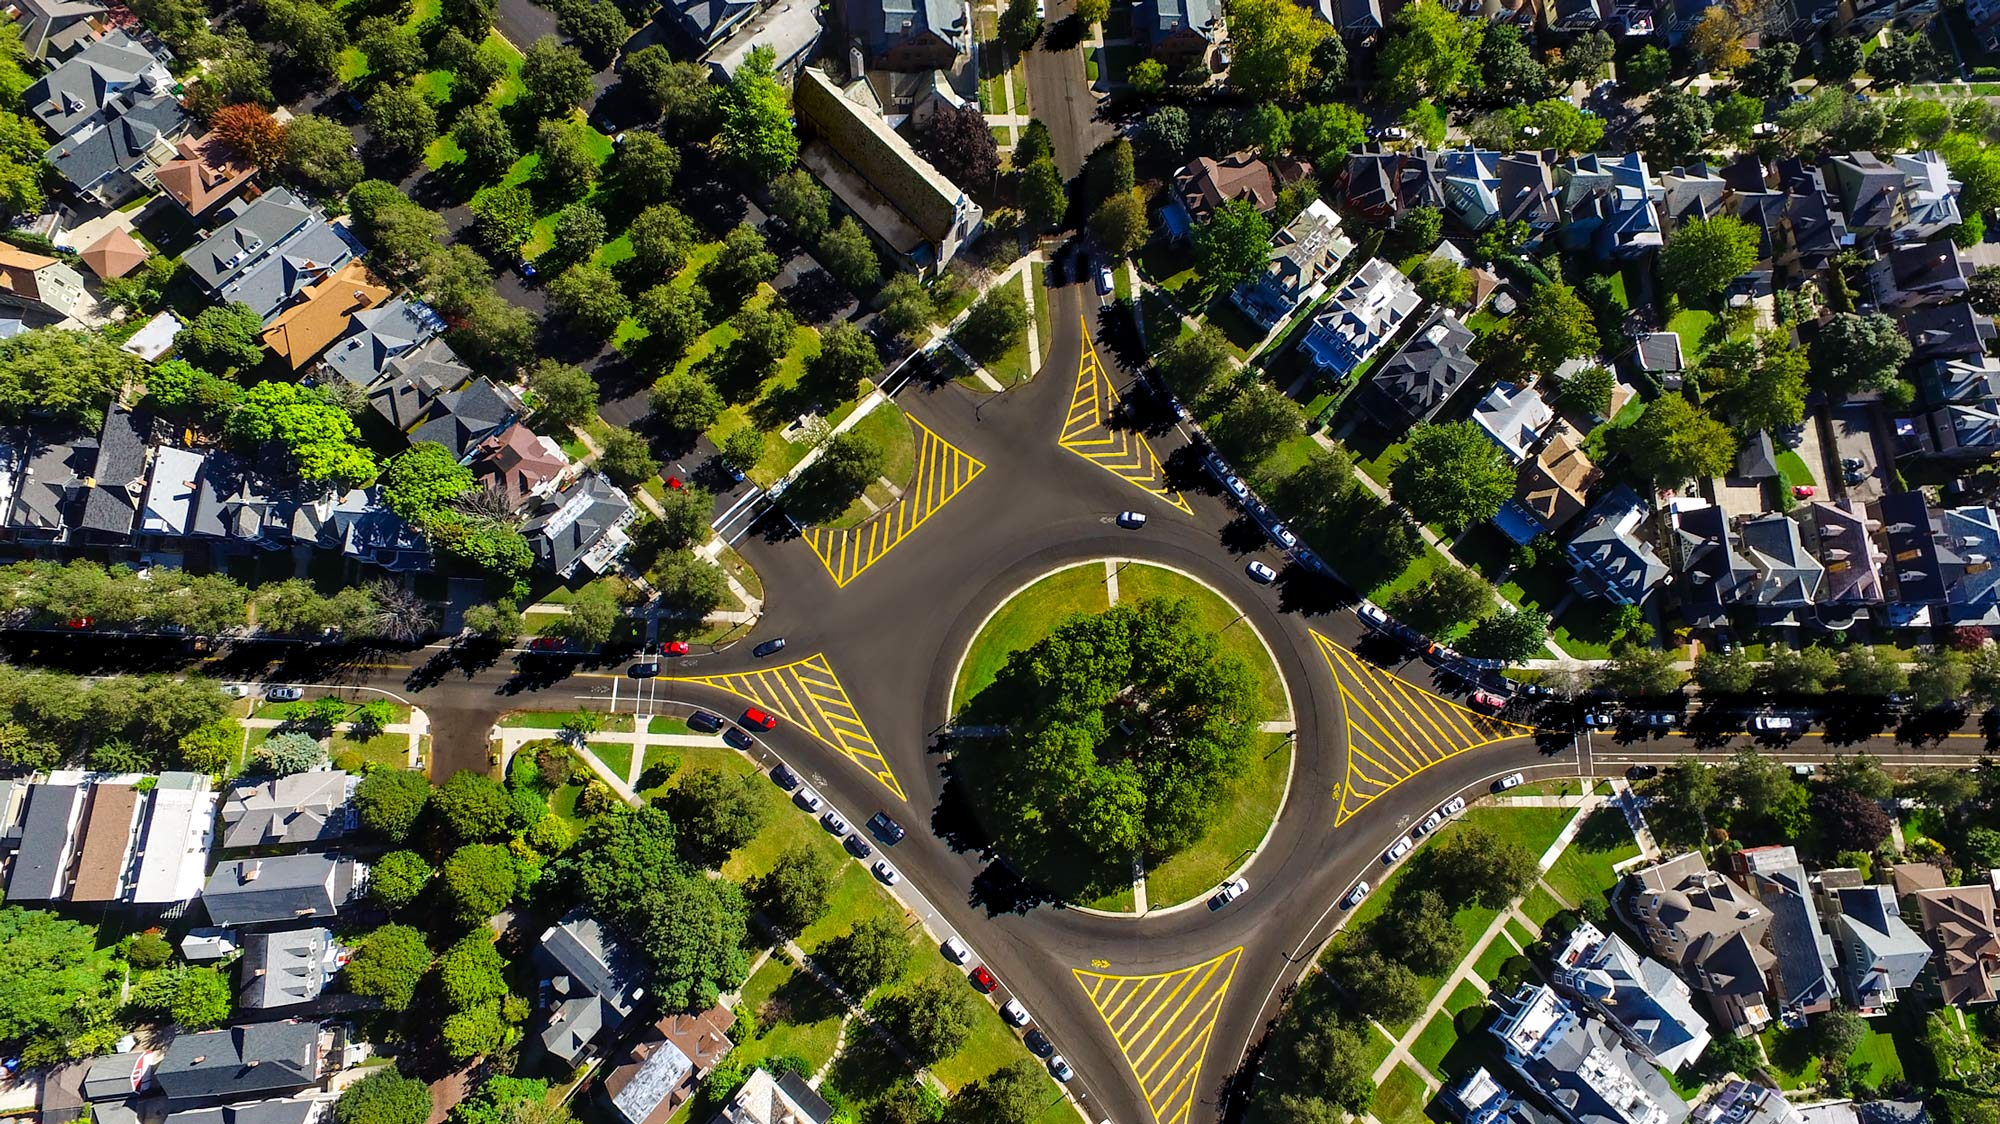 Aerial view of an urban traffic circle and parkways | Scott Gable industrial photographer